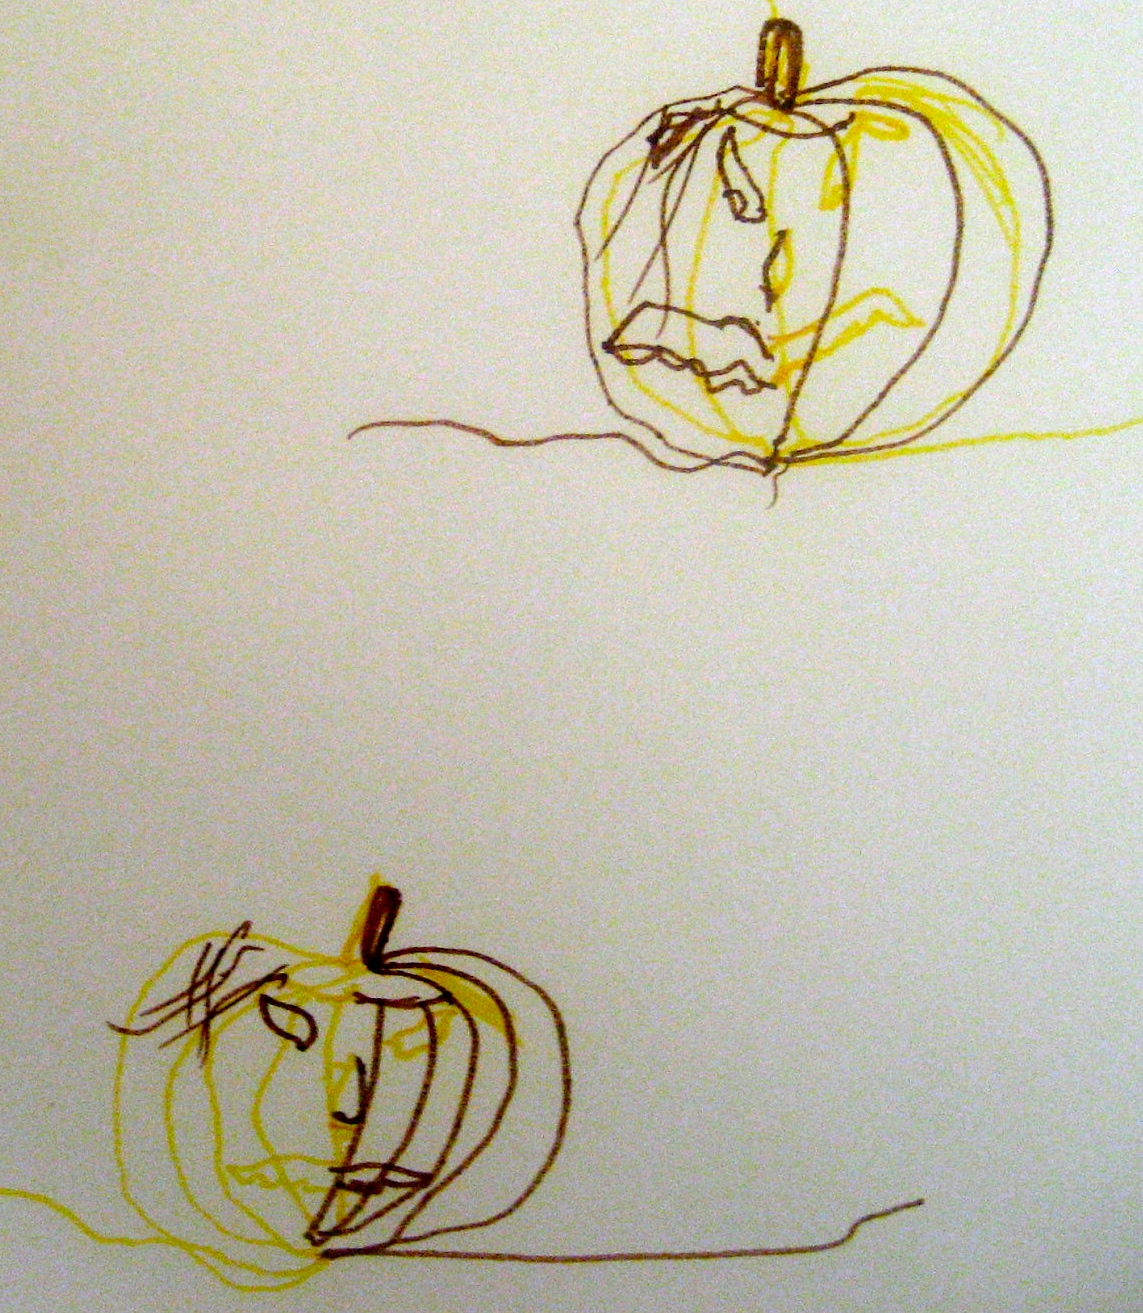 Drawn pumpkin asymmetrical An Doodle A Make Double